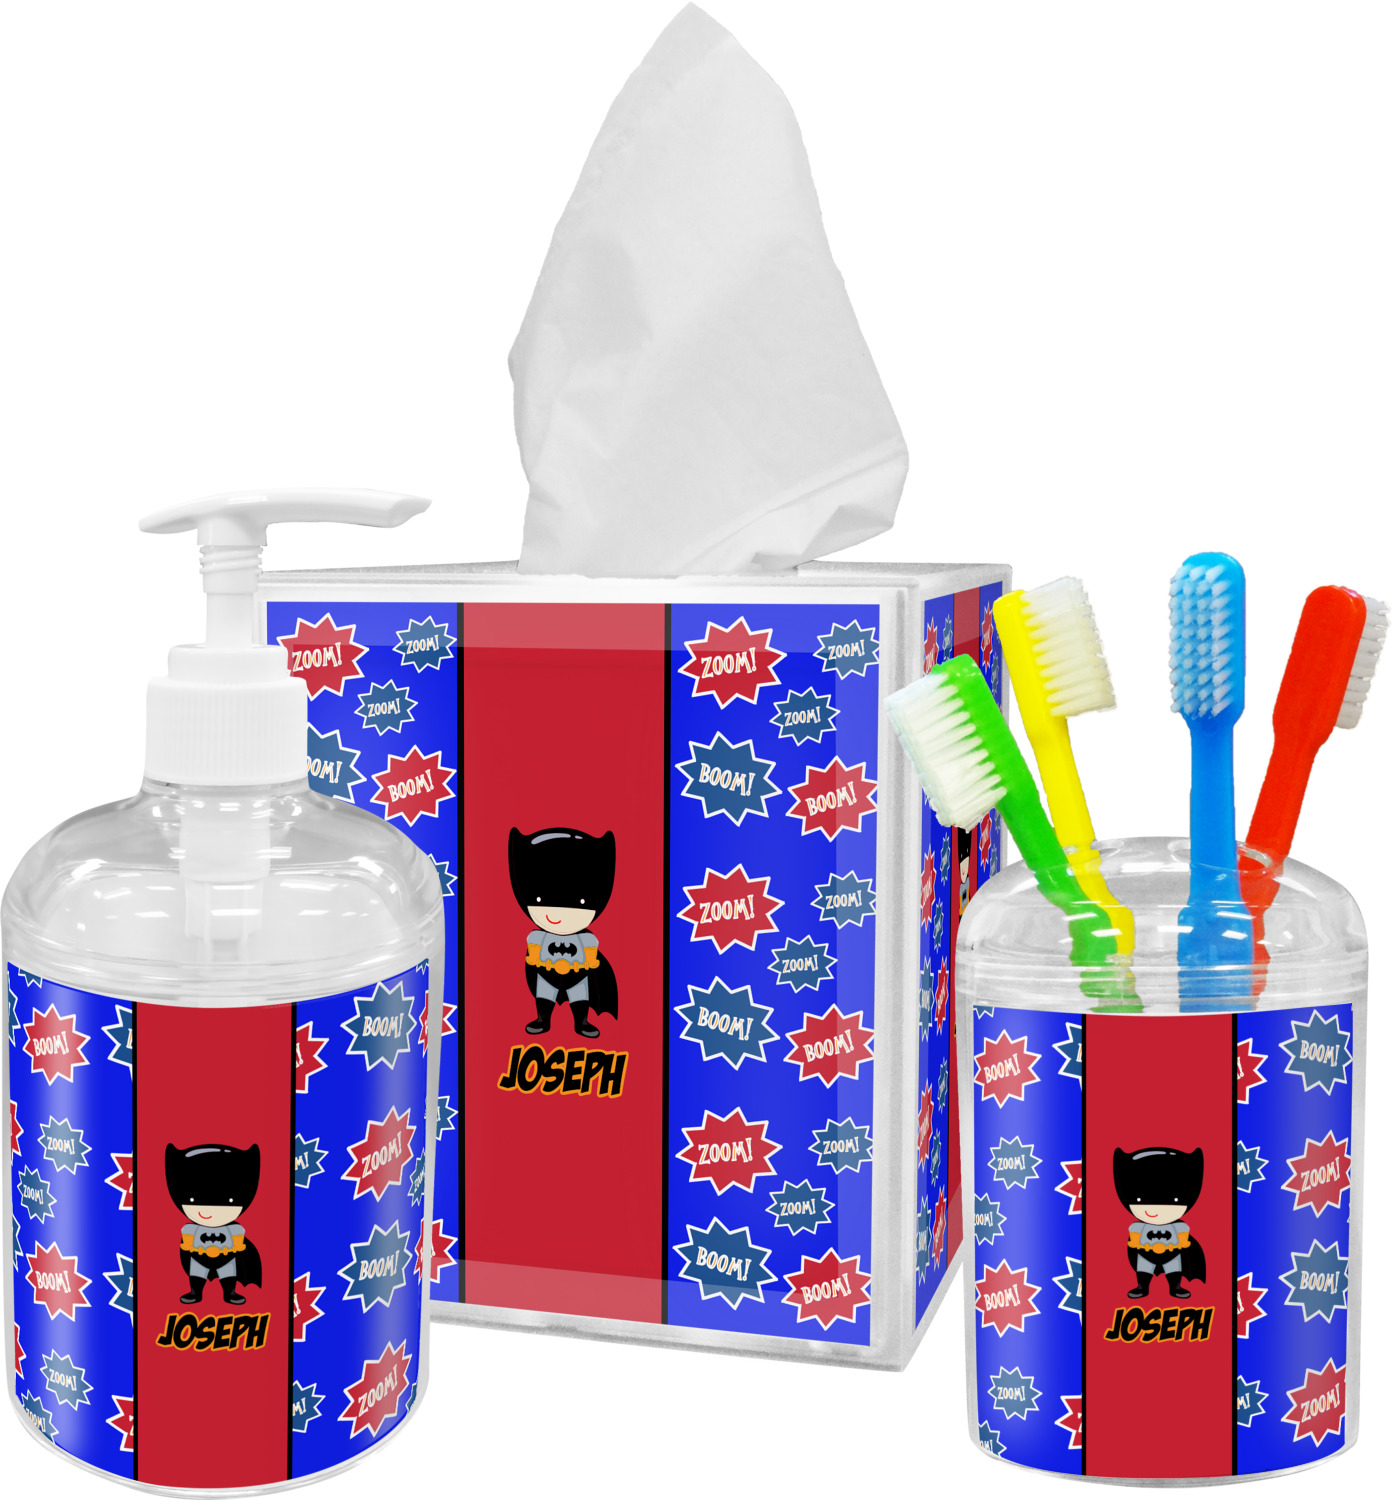 Superhero Bathroom Accessories Set Personalized